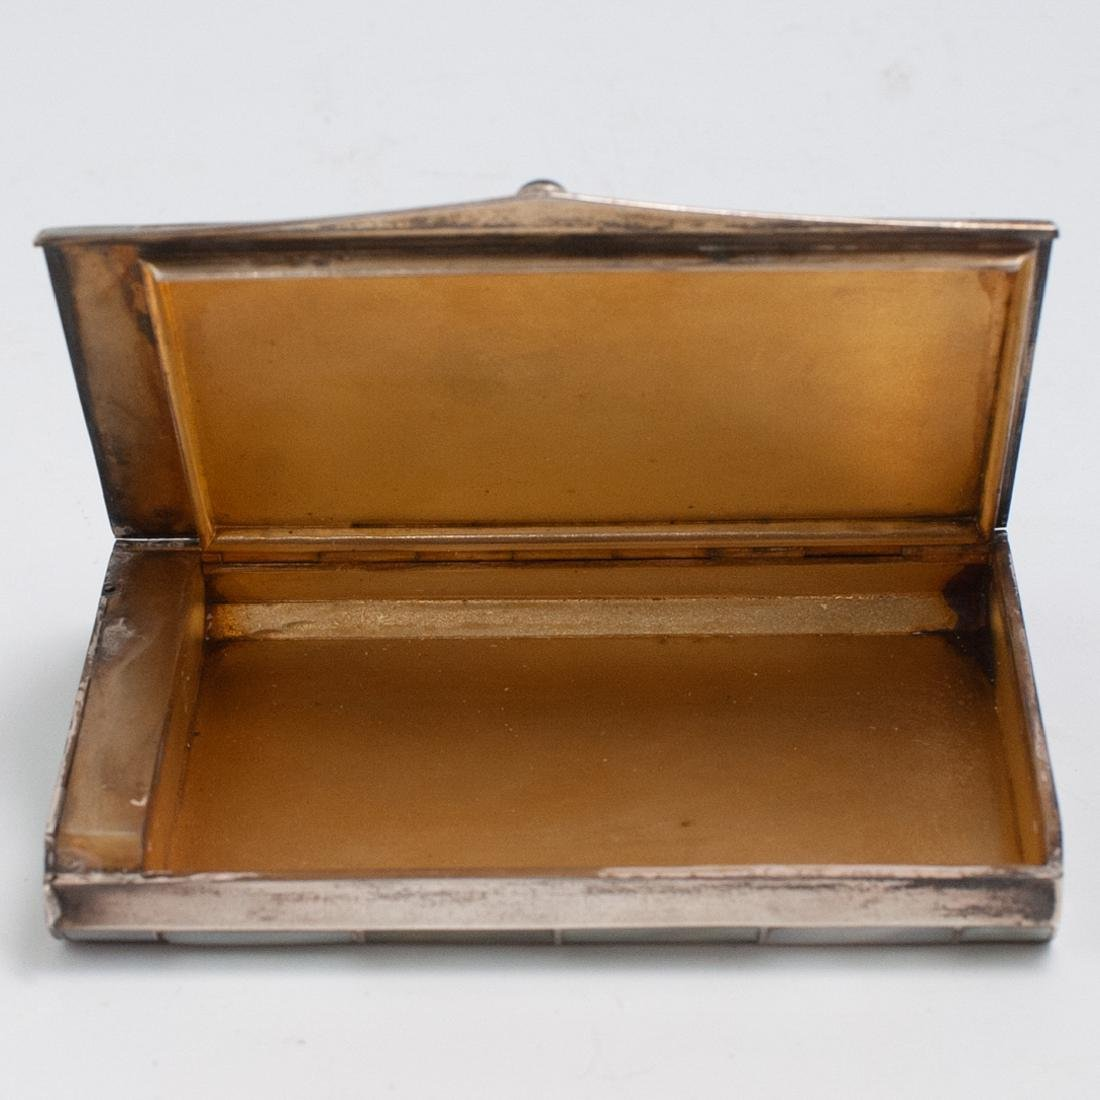 Silver and Mother of Pearl Inlaid Jewelry Box - 3